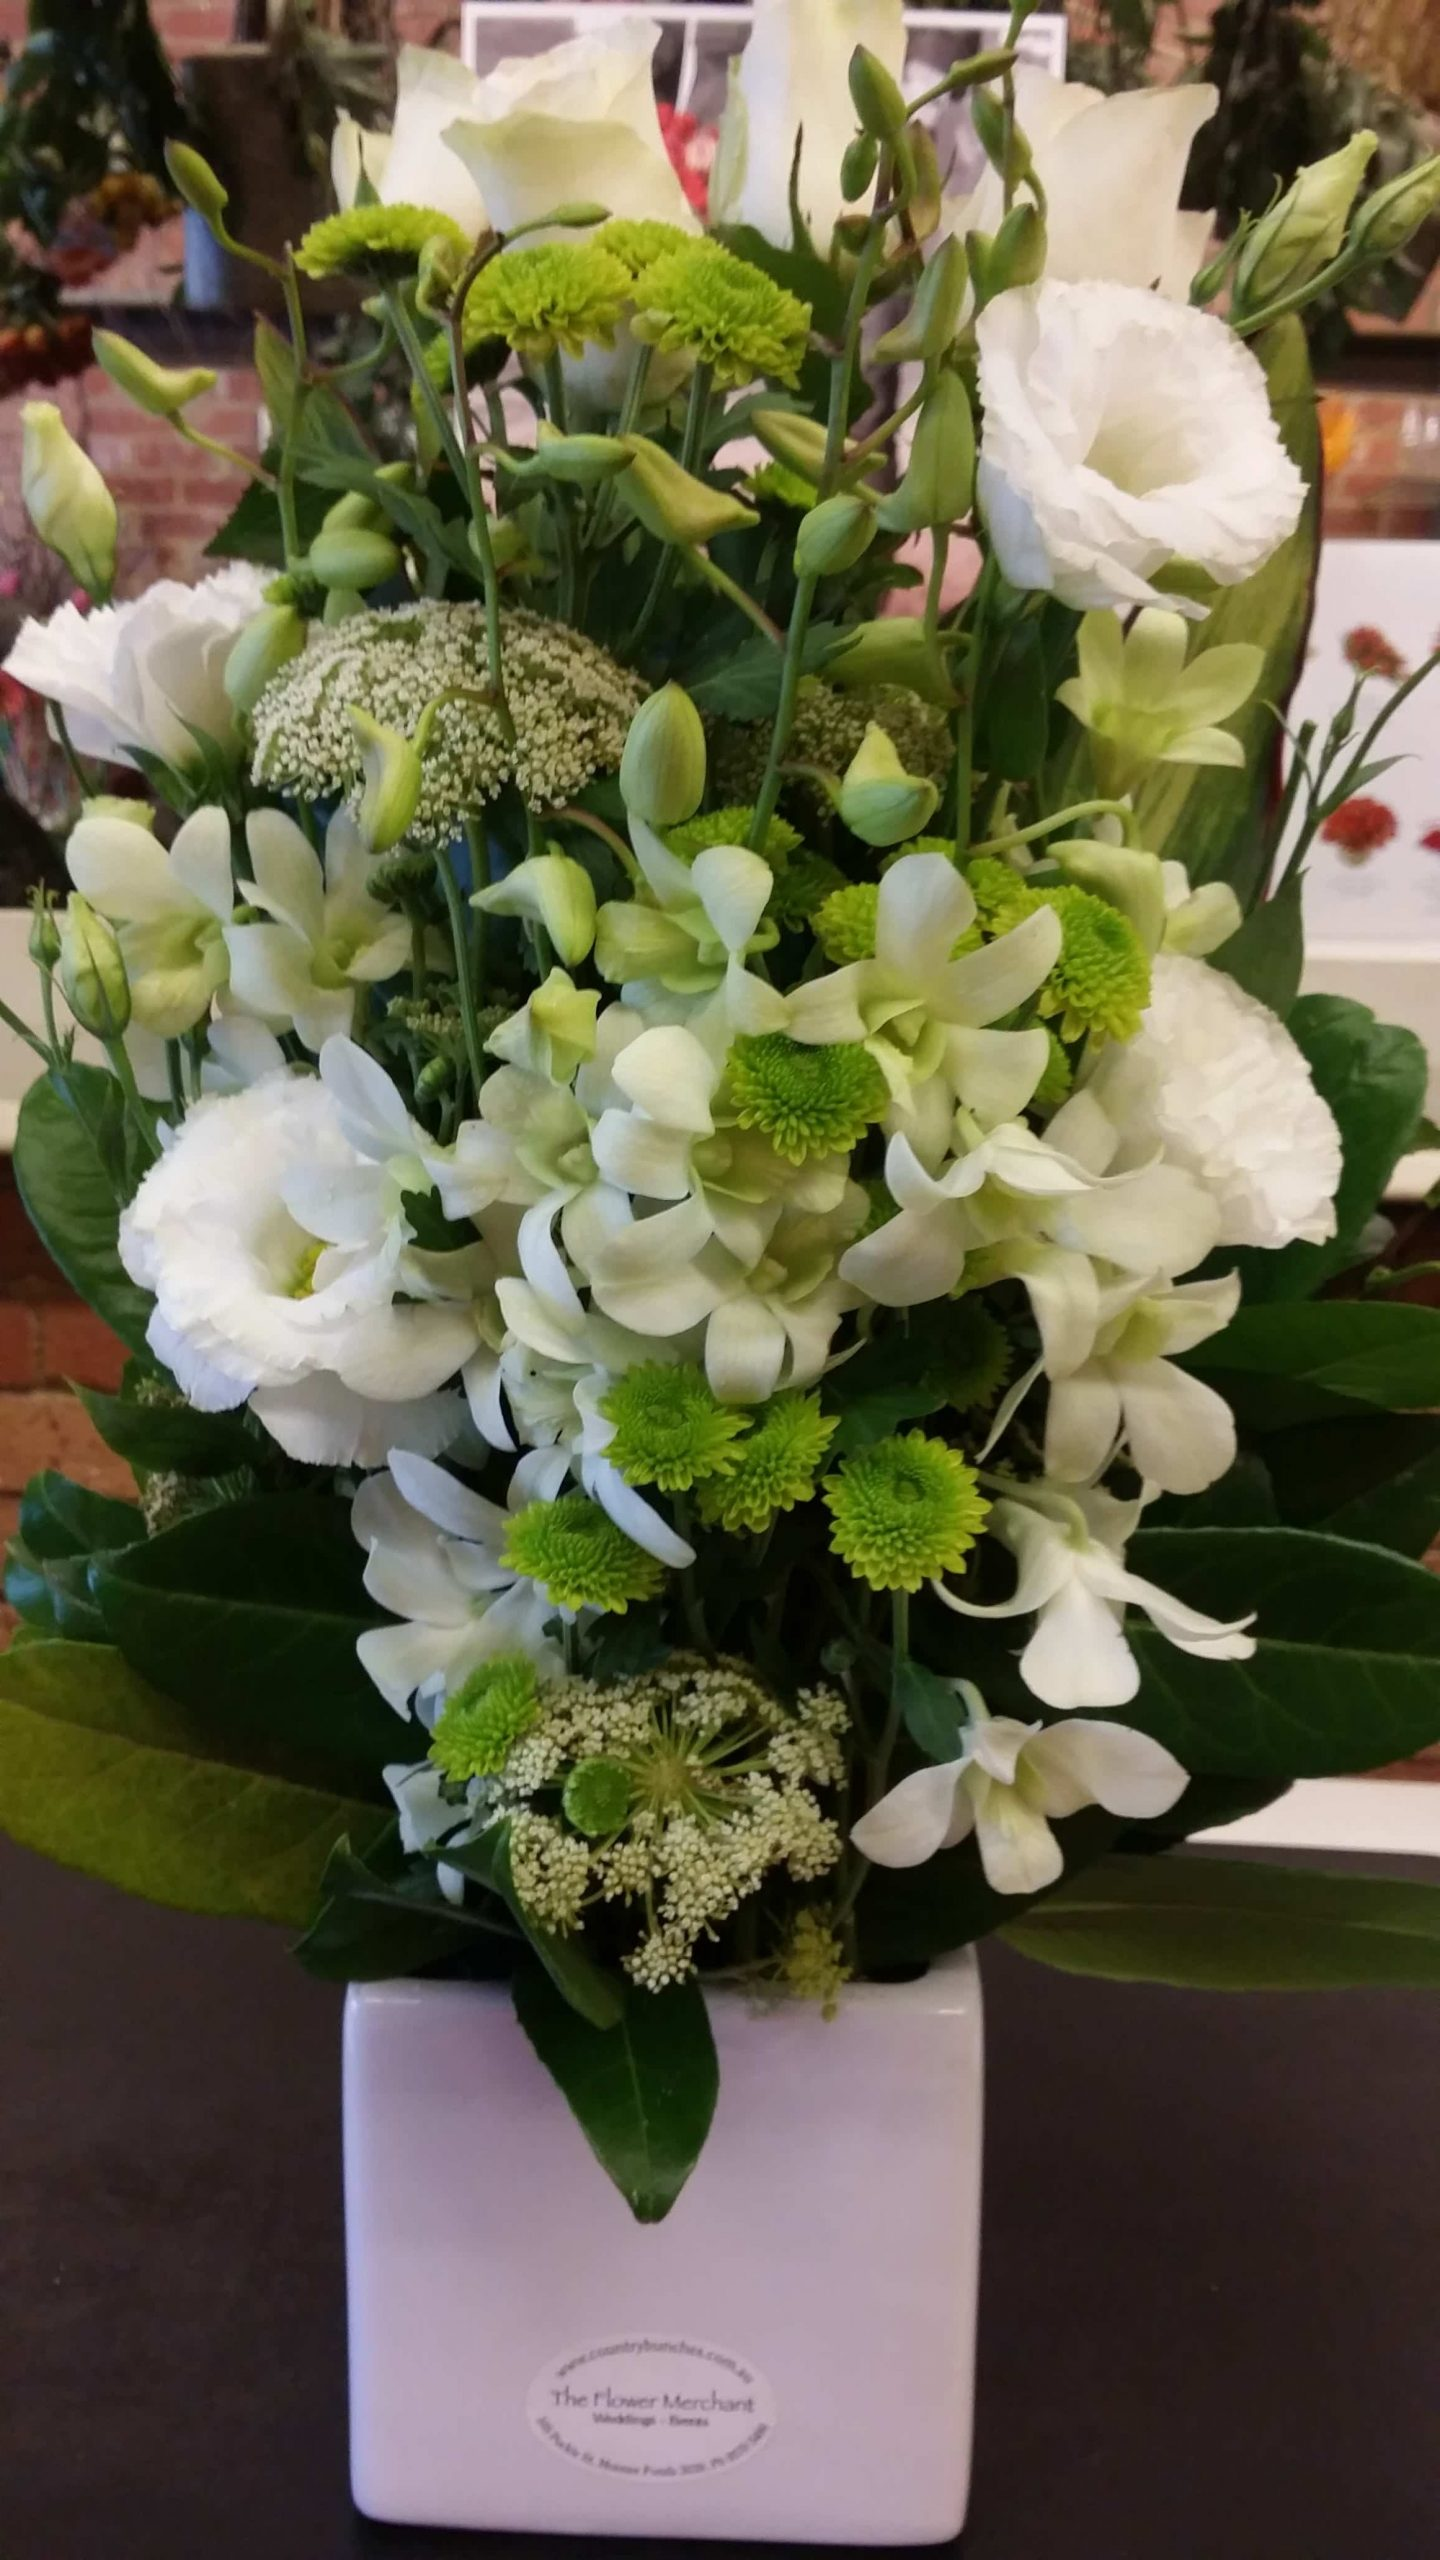 - image V.C.F.26-e1533085073918-scaled on https://theflowermerchant.com.au